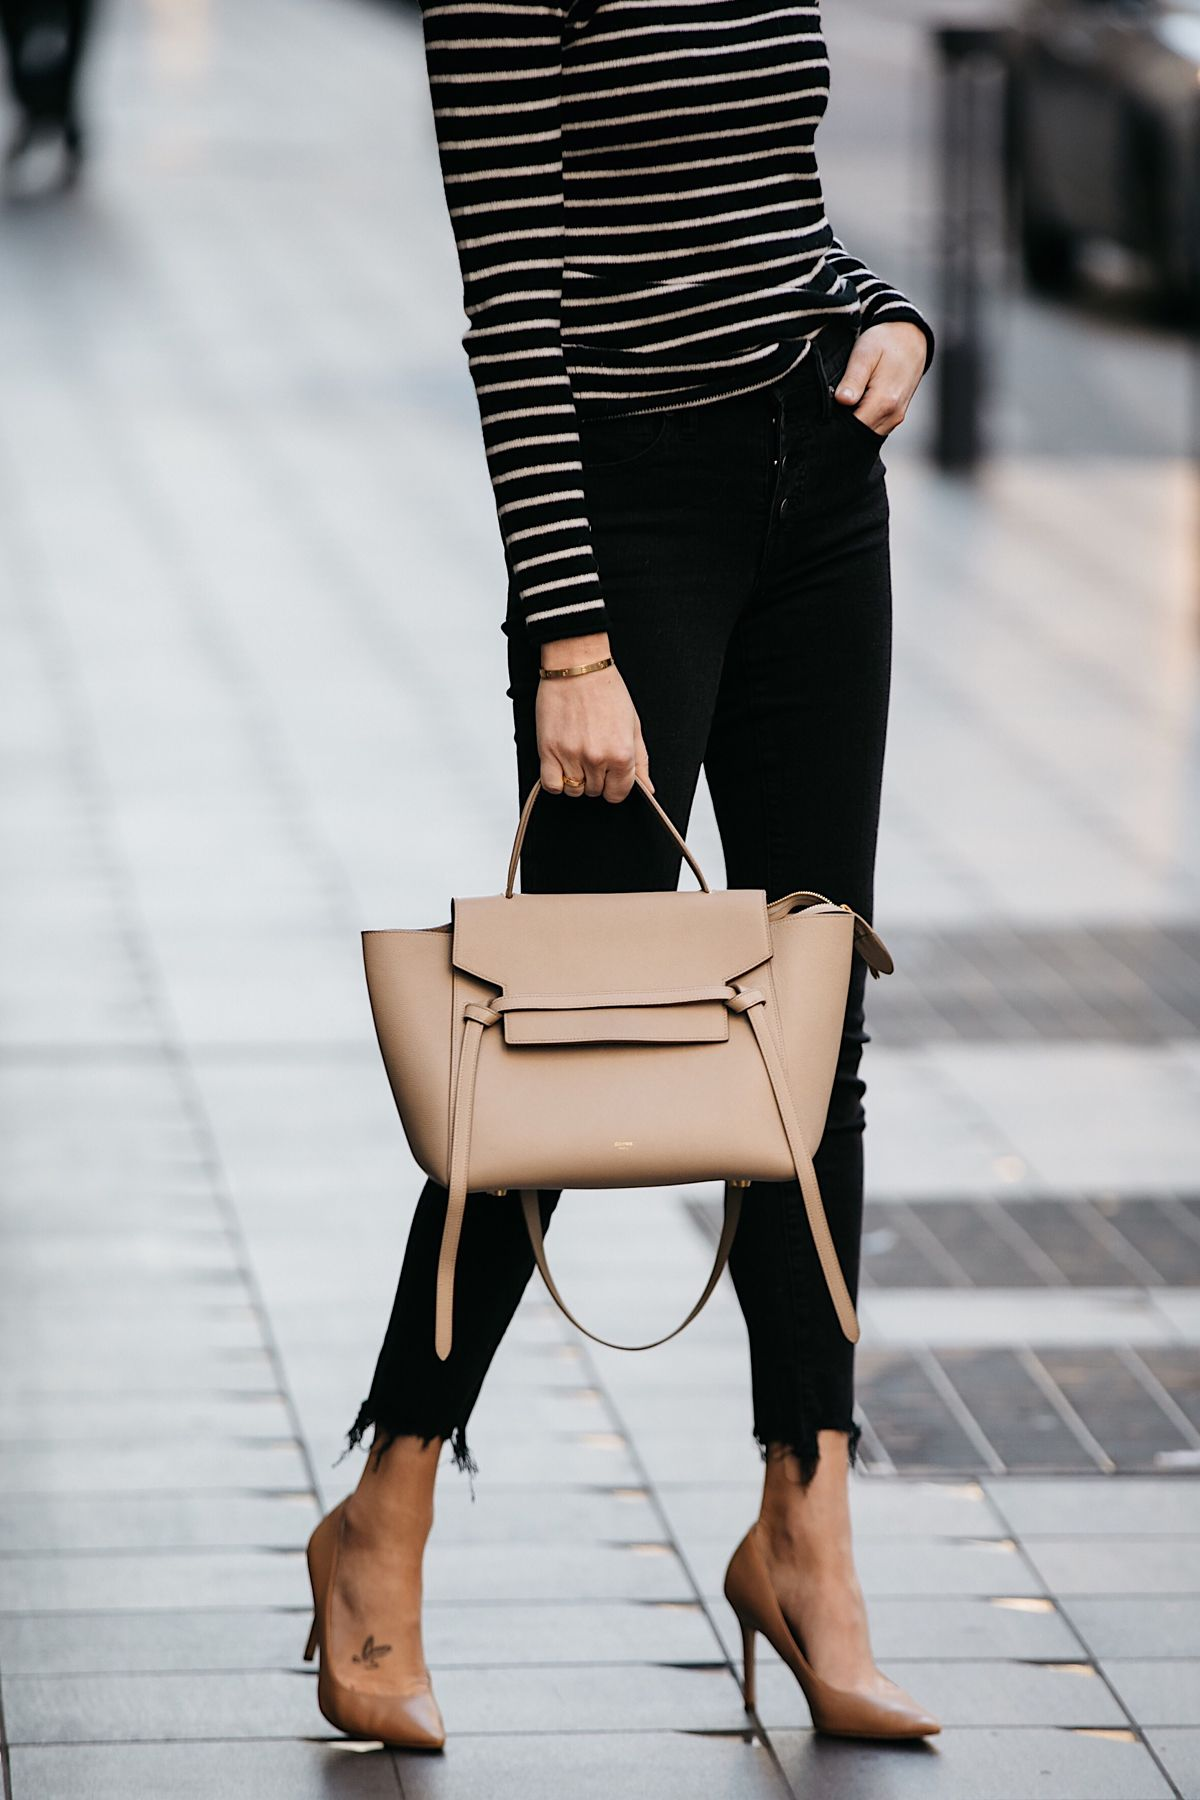 182ddaf34d35bf Fashion Jackson Nordstrom Black White Striped Sweater Black Skinny Jeans  Nude Pumps Celine Mini Belt Bag